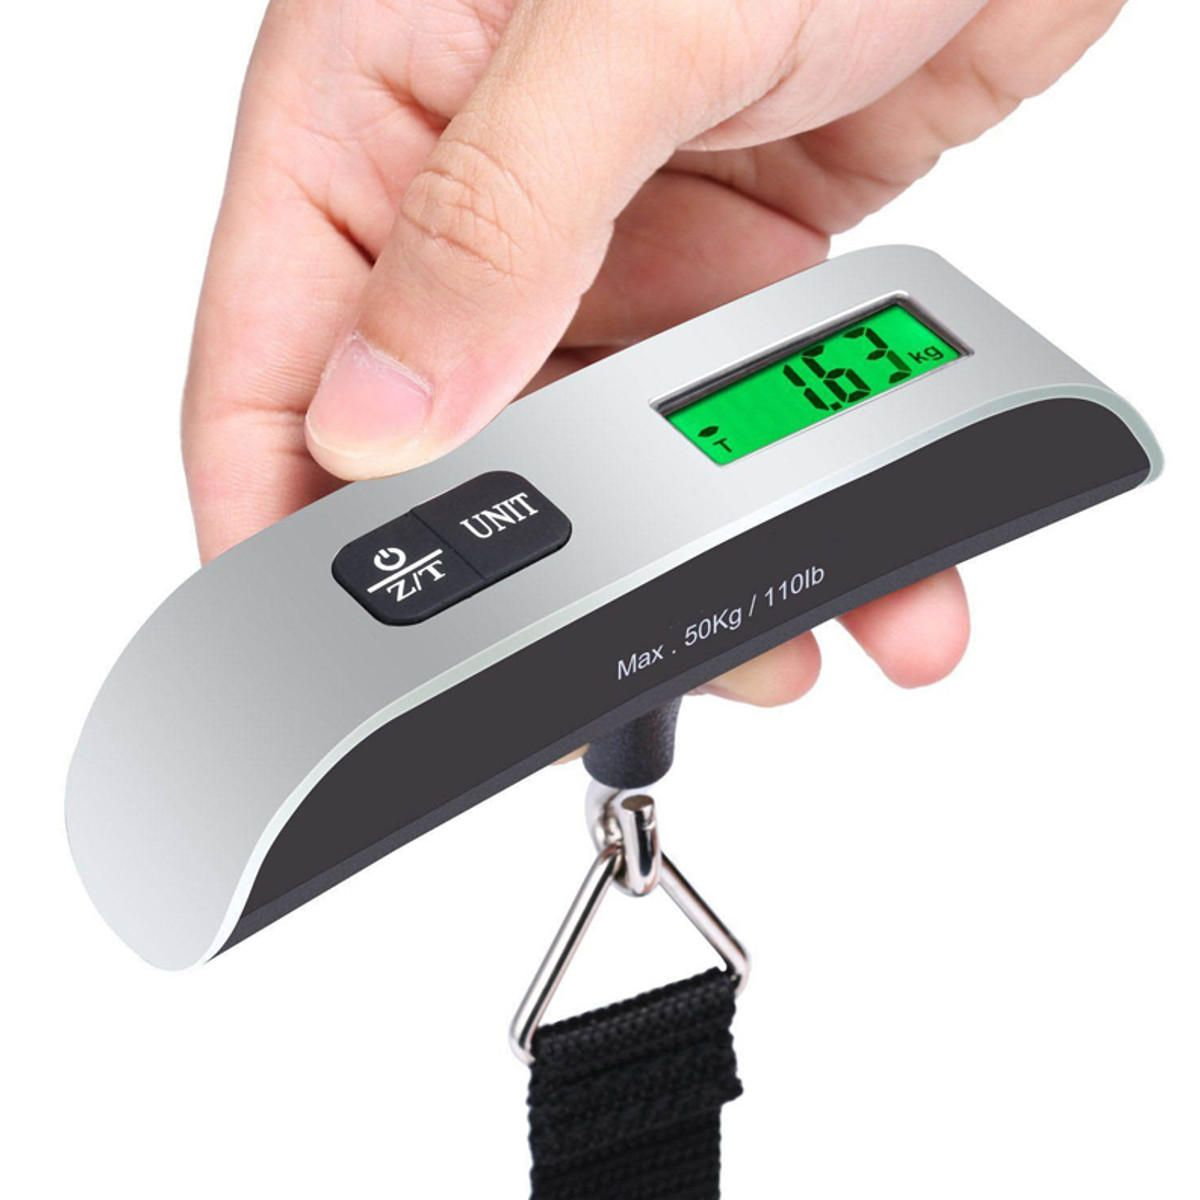 50KG Luggage Scales Handheld Electronic Travel Suitcase Bags Digital Weighing